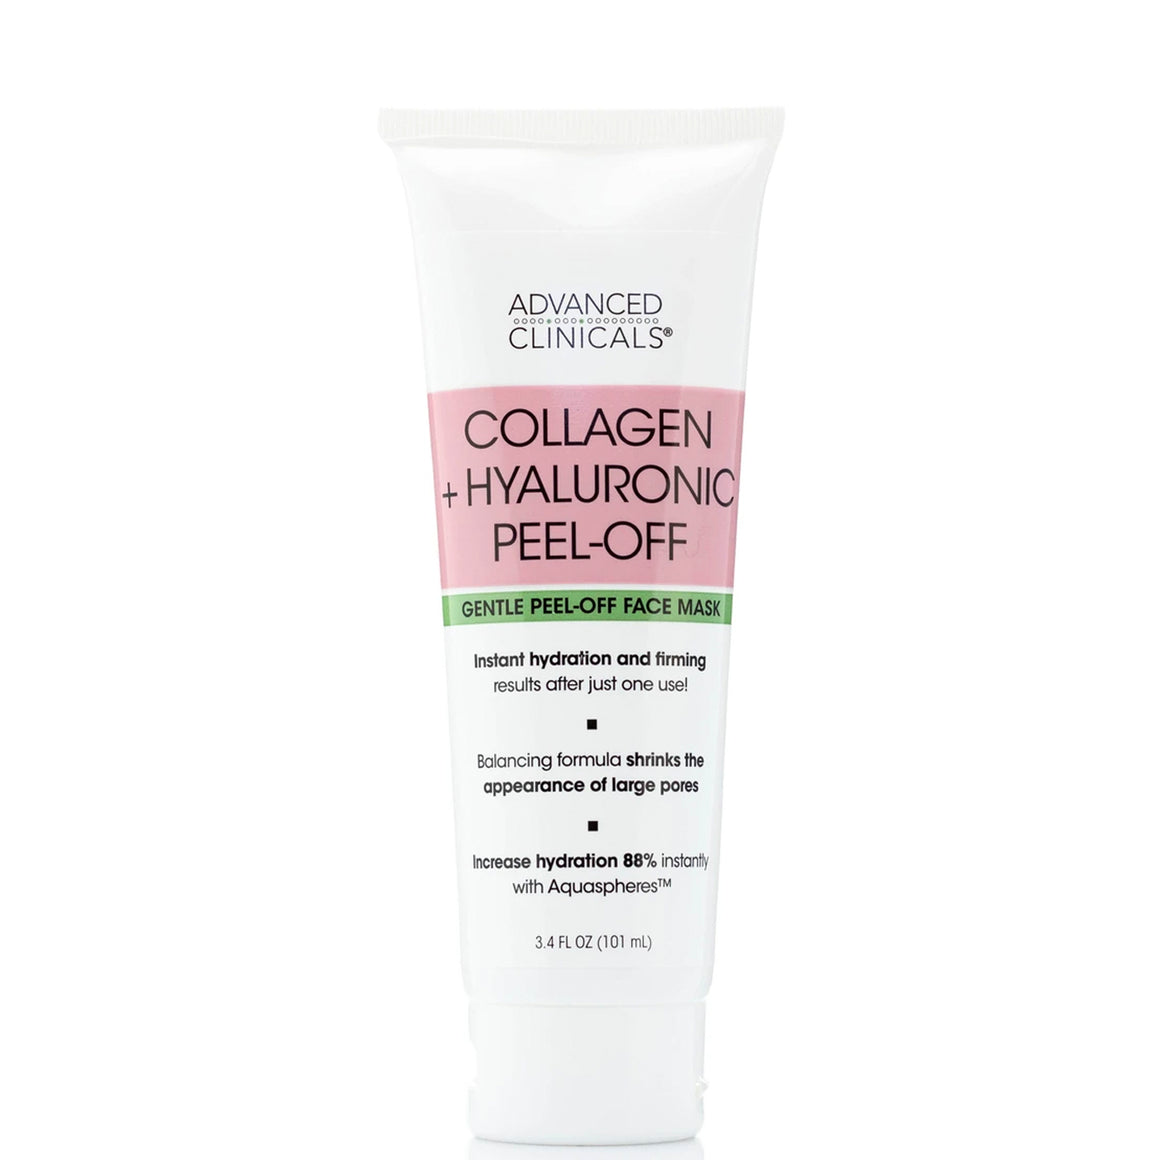 3.4oz collagen and hyaluronic peel-off face mask, instant hydration and powers